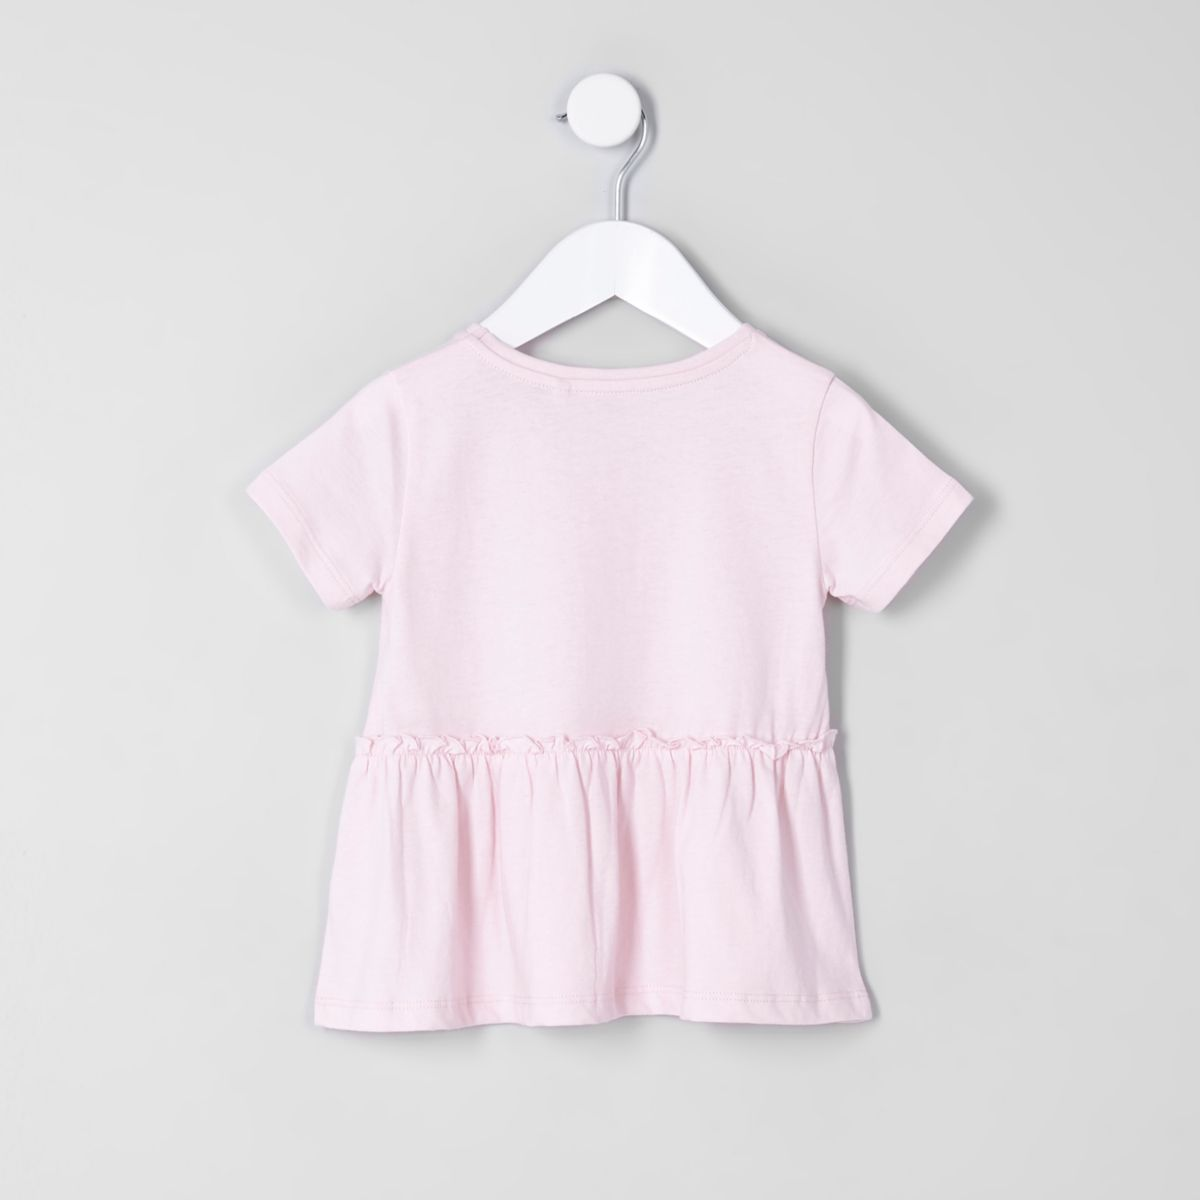 RIVER ISLAND Light Pink Girls Premium Cotton Dress Tshirt